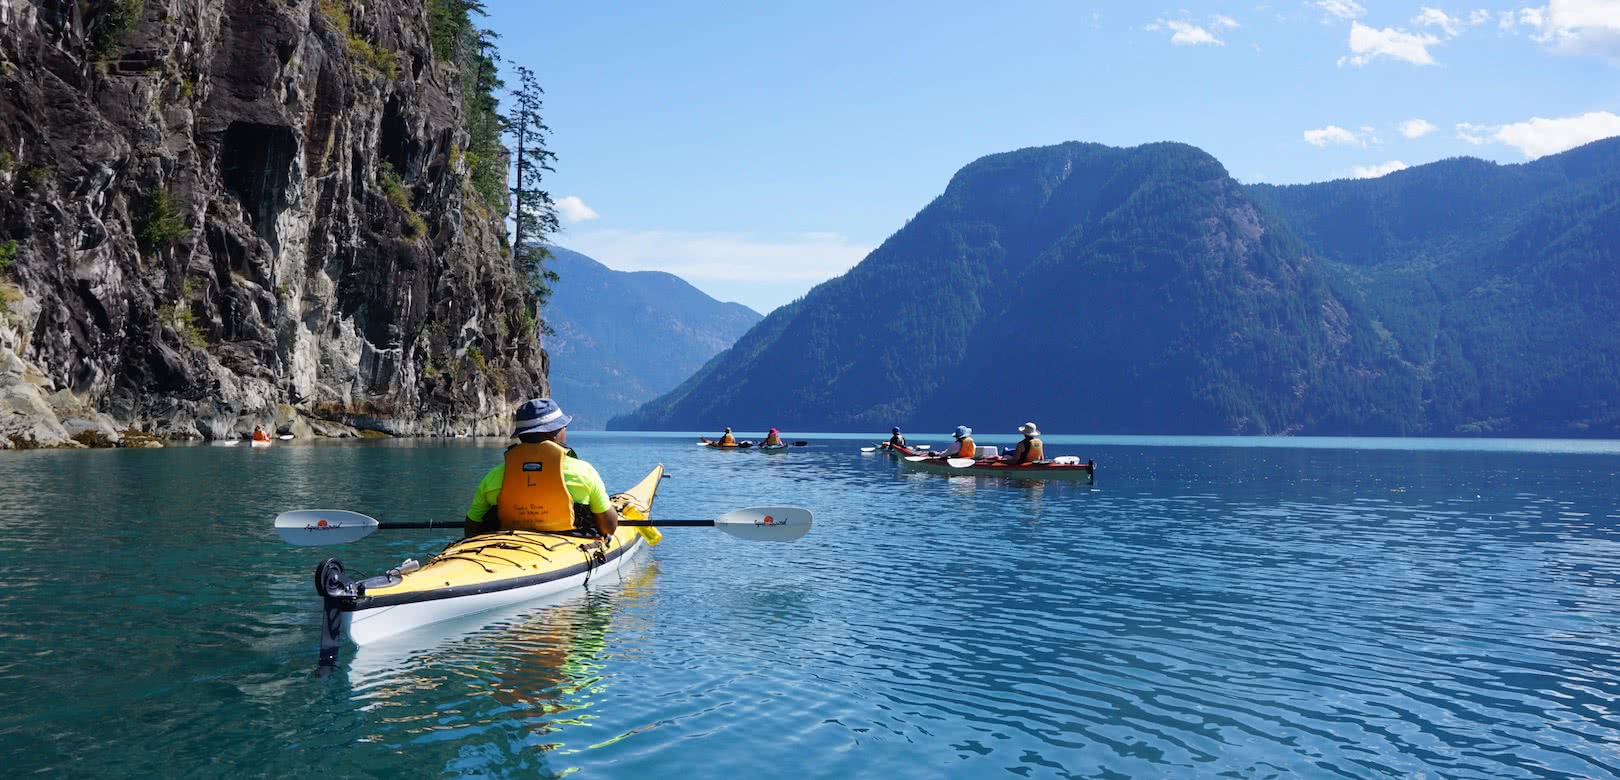 Our 7 day multi-day kayak tours paddle into Toba Inlet and move camps every day, unique among British Columbia kayak tours